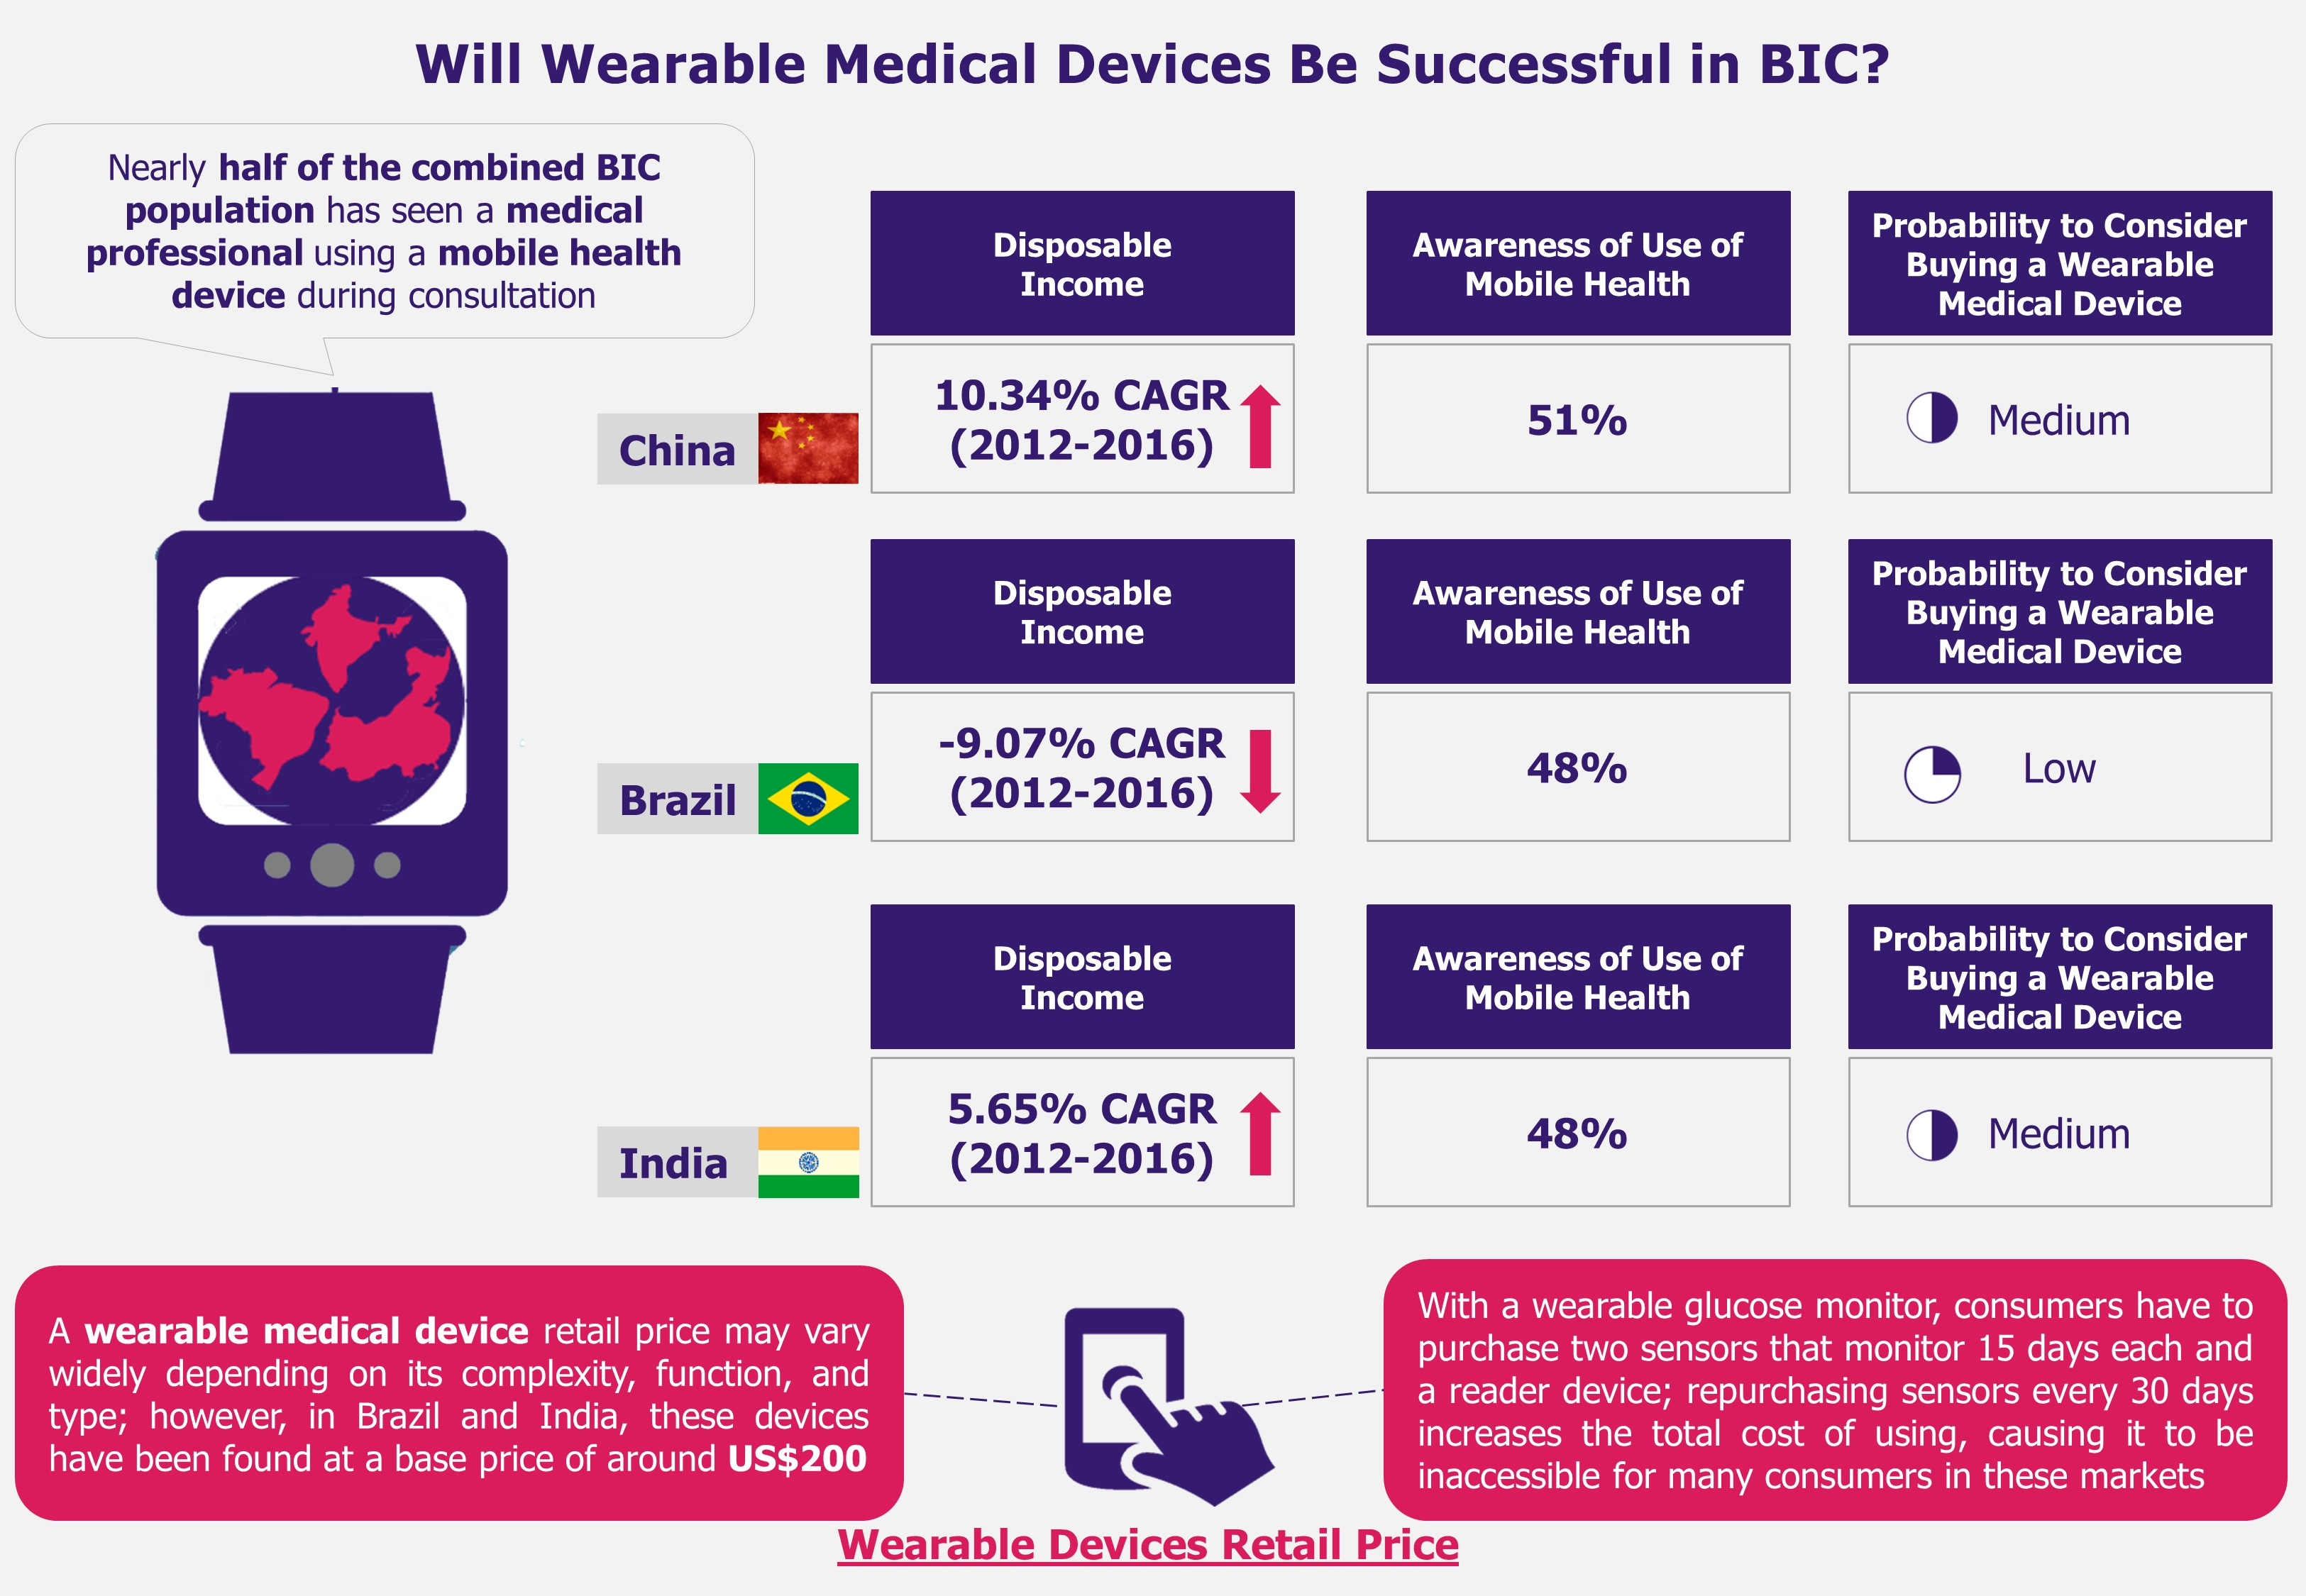 Wearable Medical Devices in India, Brazil, and China - Successful in BIC